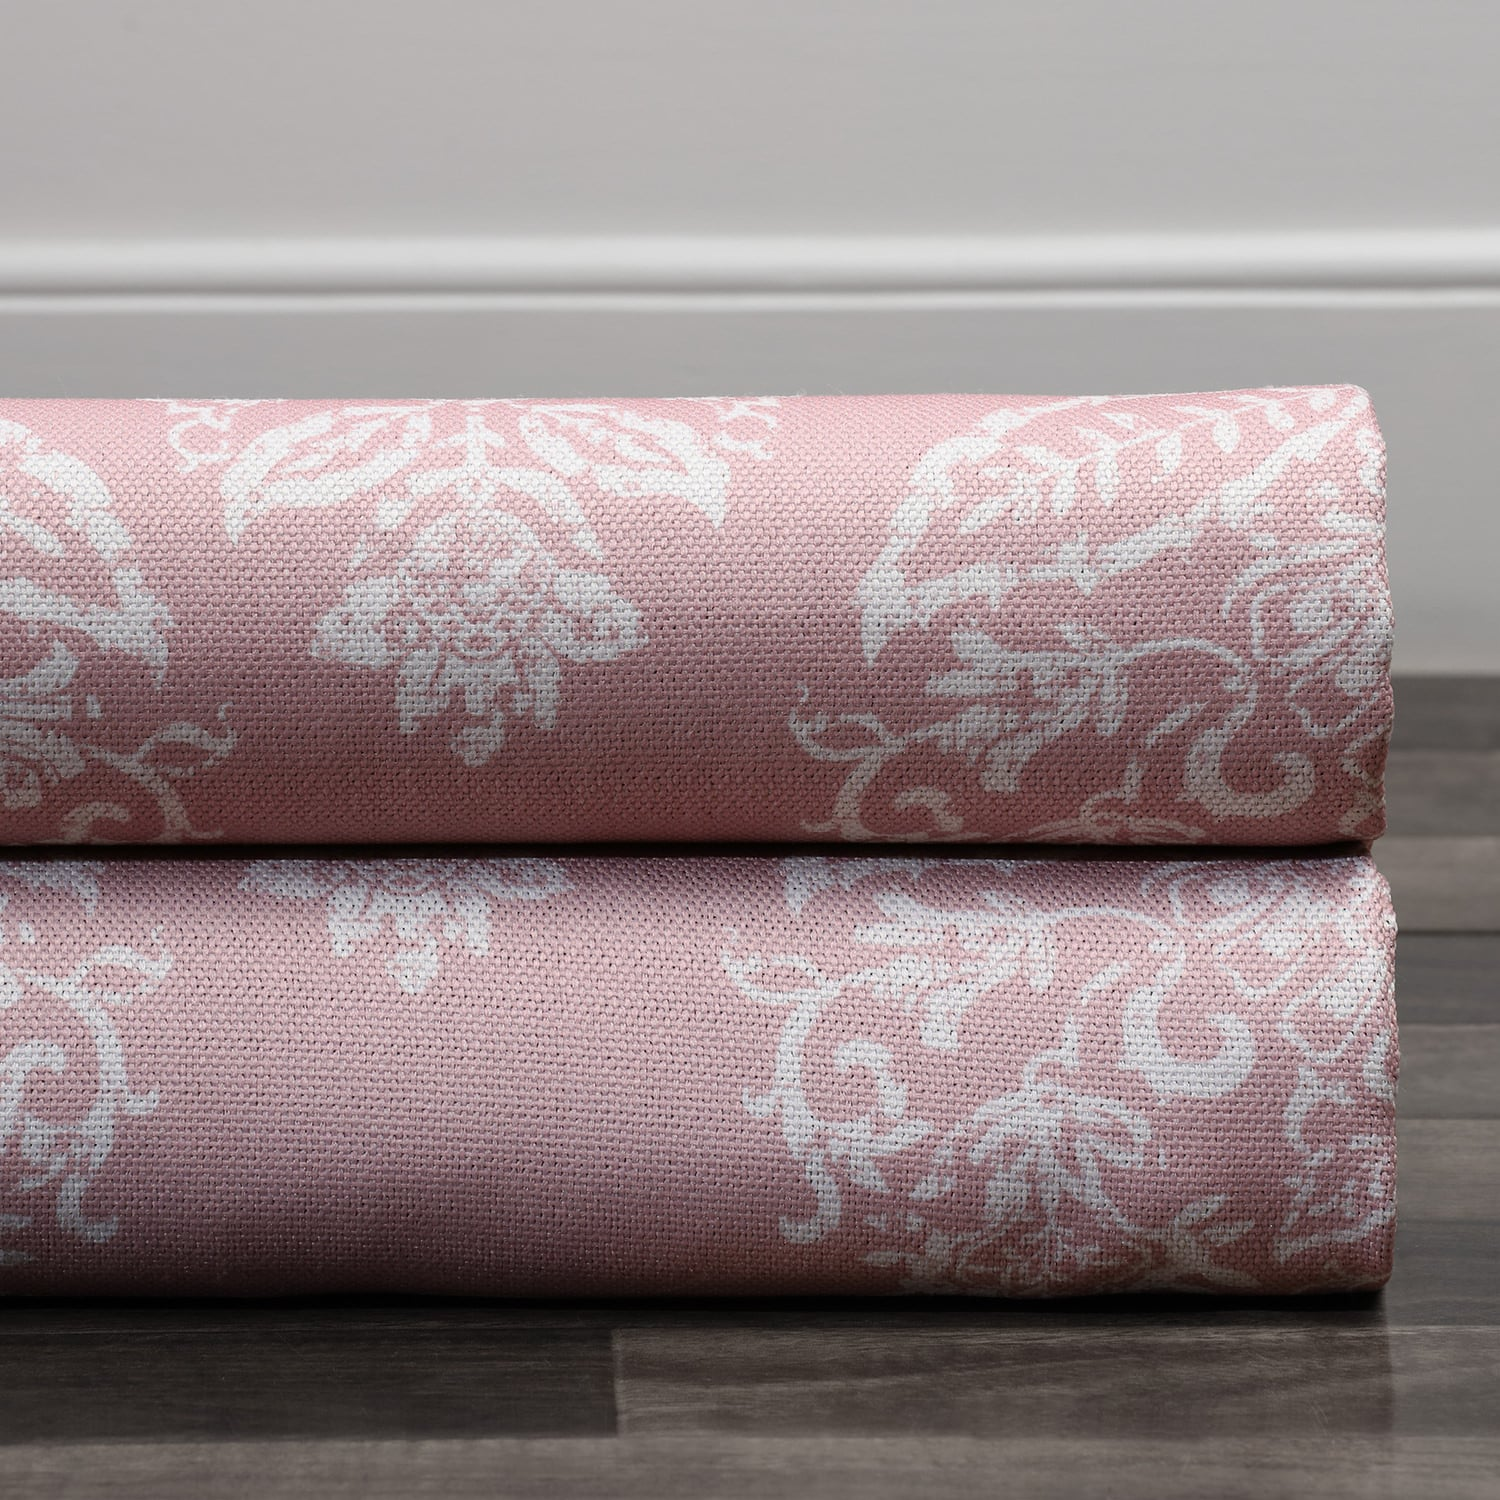 Istanbul Pink Printed Linen Textured Blackout Swatch